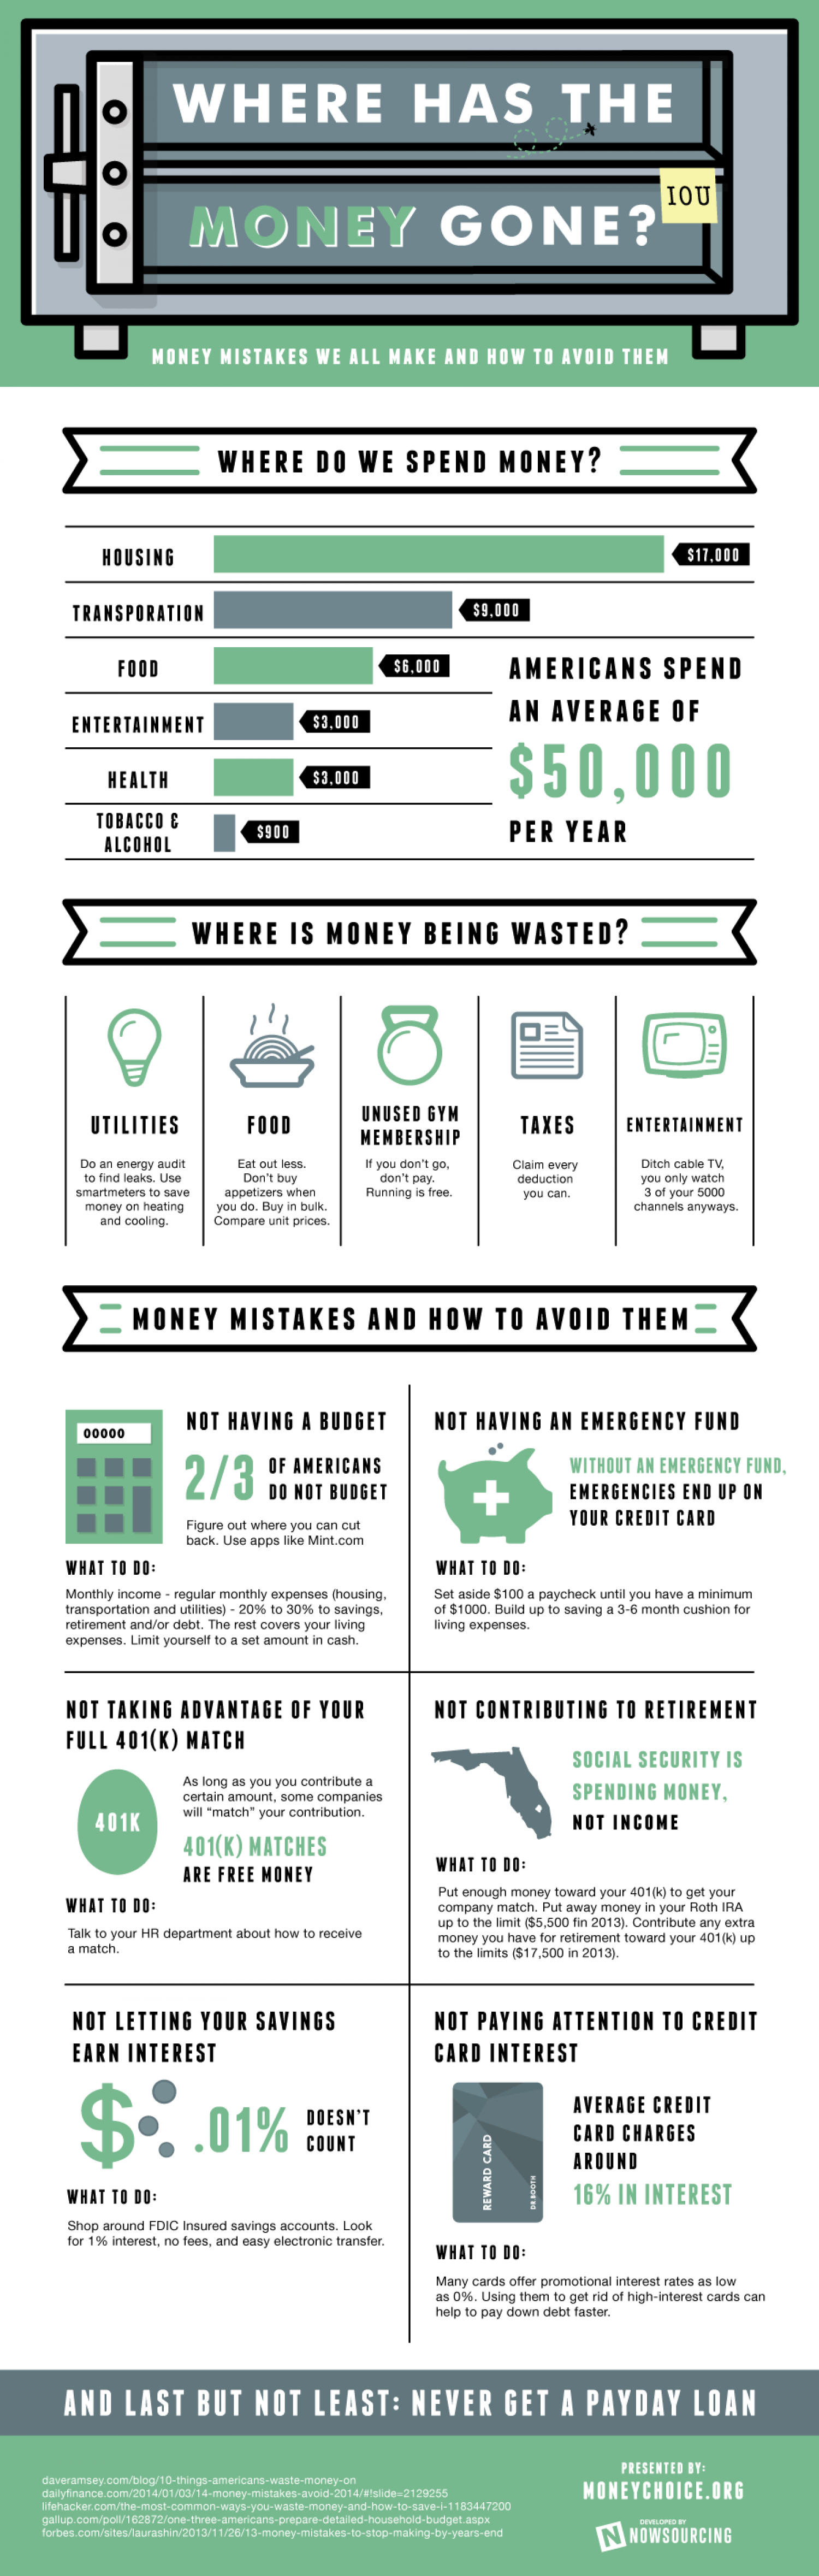 Where Has the Money Gone? Infographic